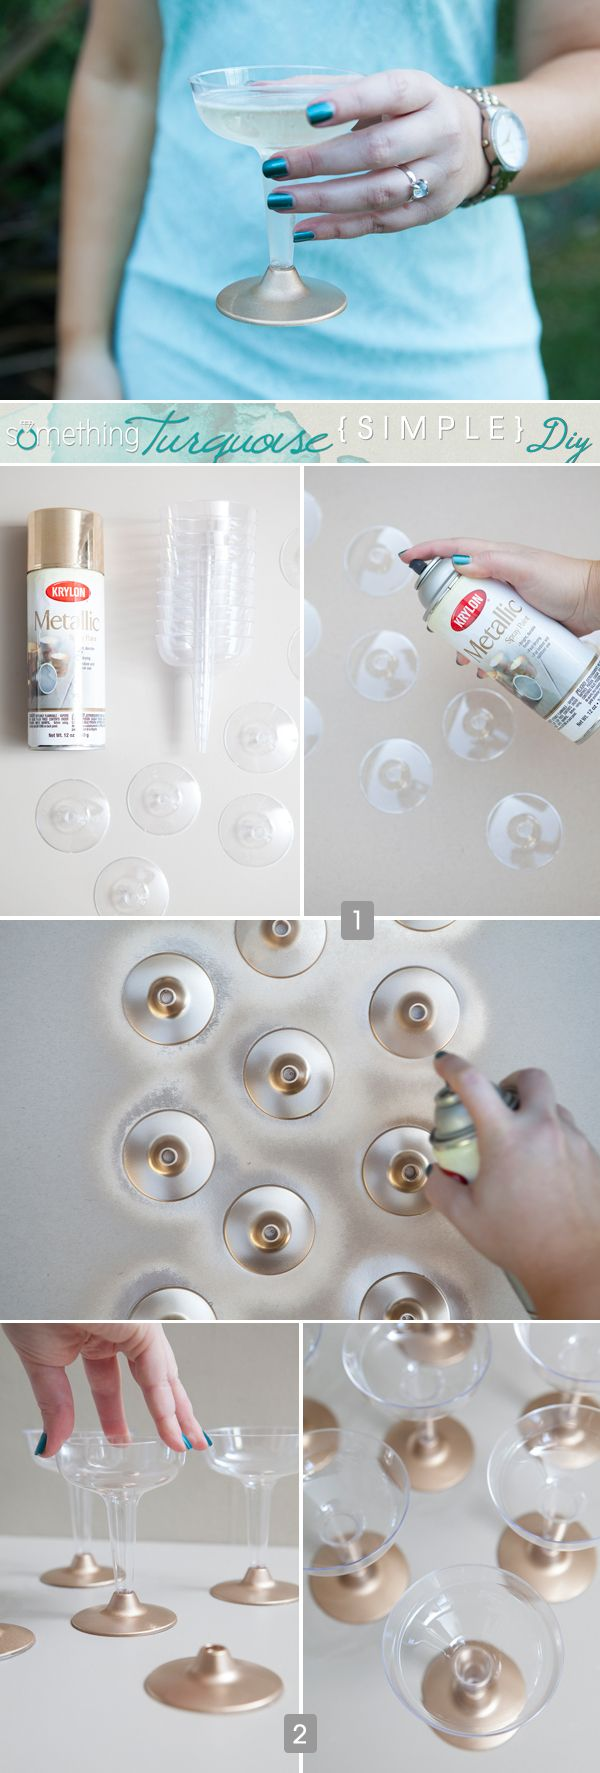 10 Wedding DIY Projects For $10 Or Less